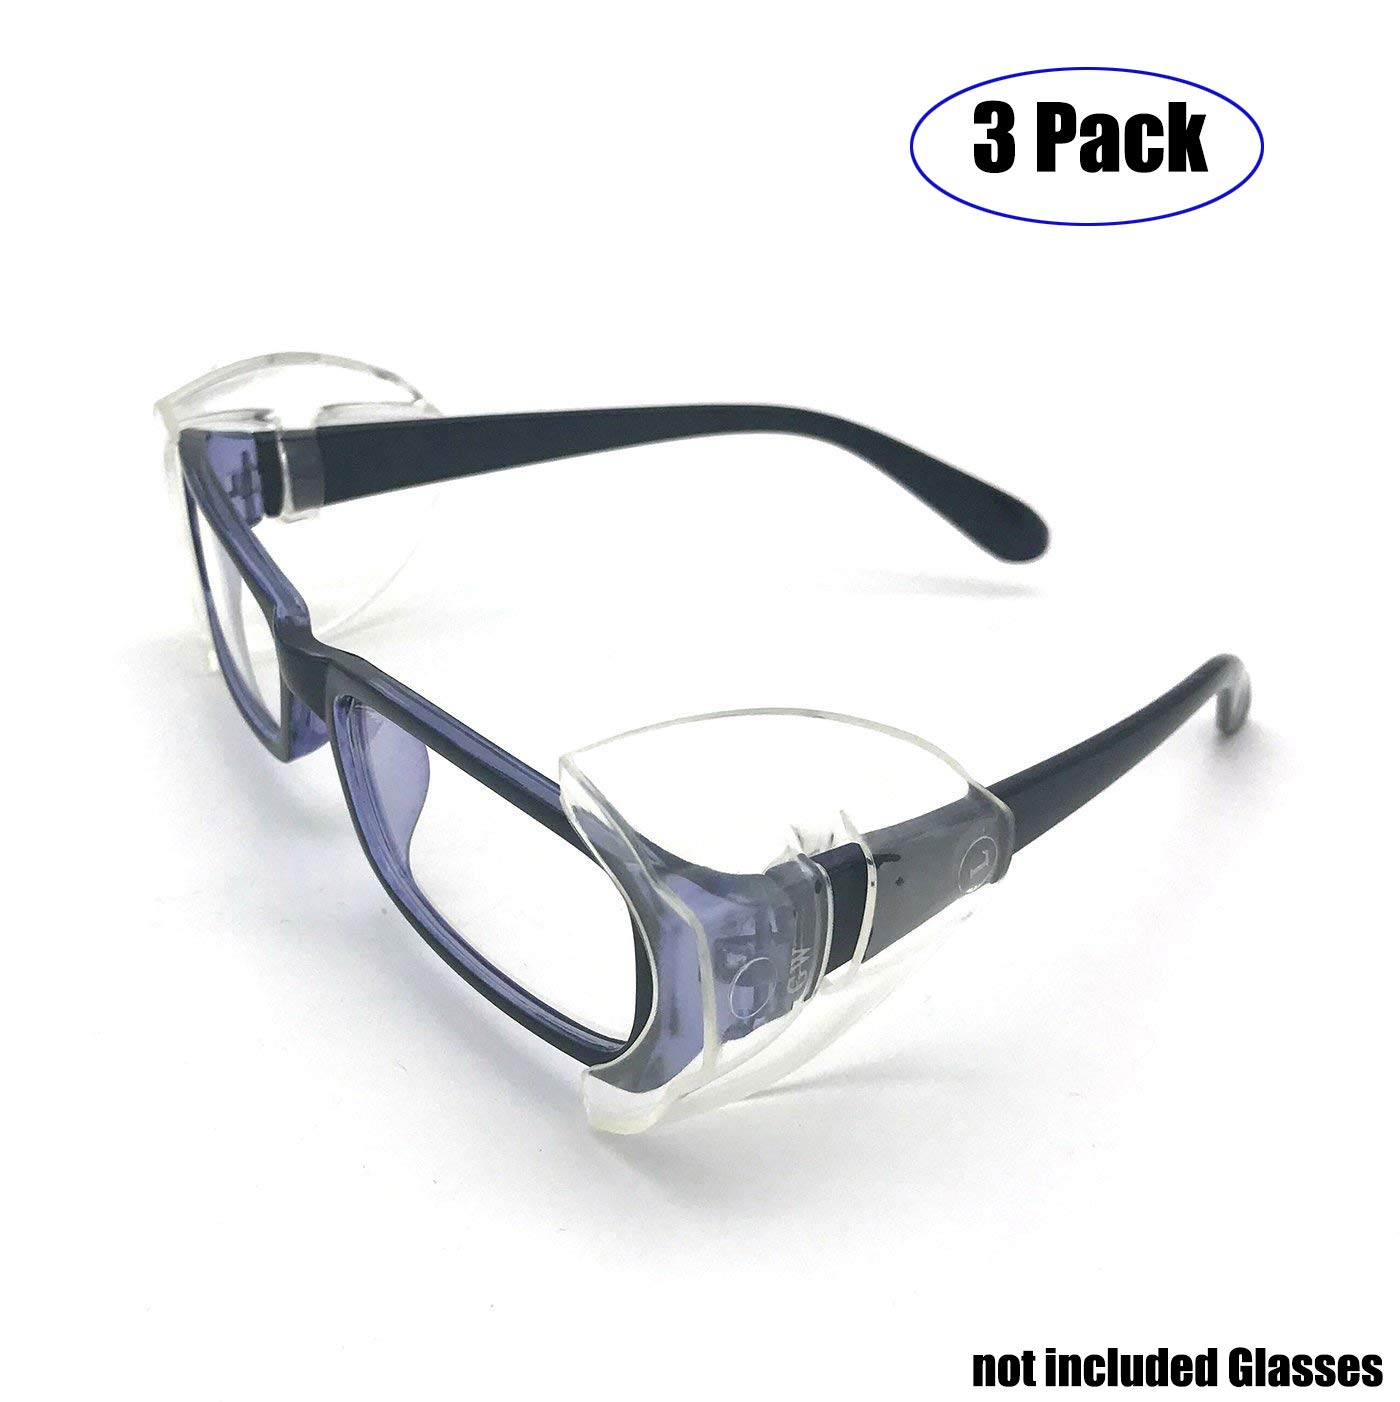 2x clear universal flexible side shield safety glasses goggles eye protection RS